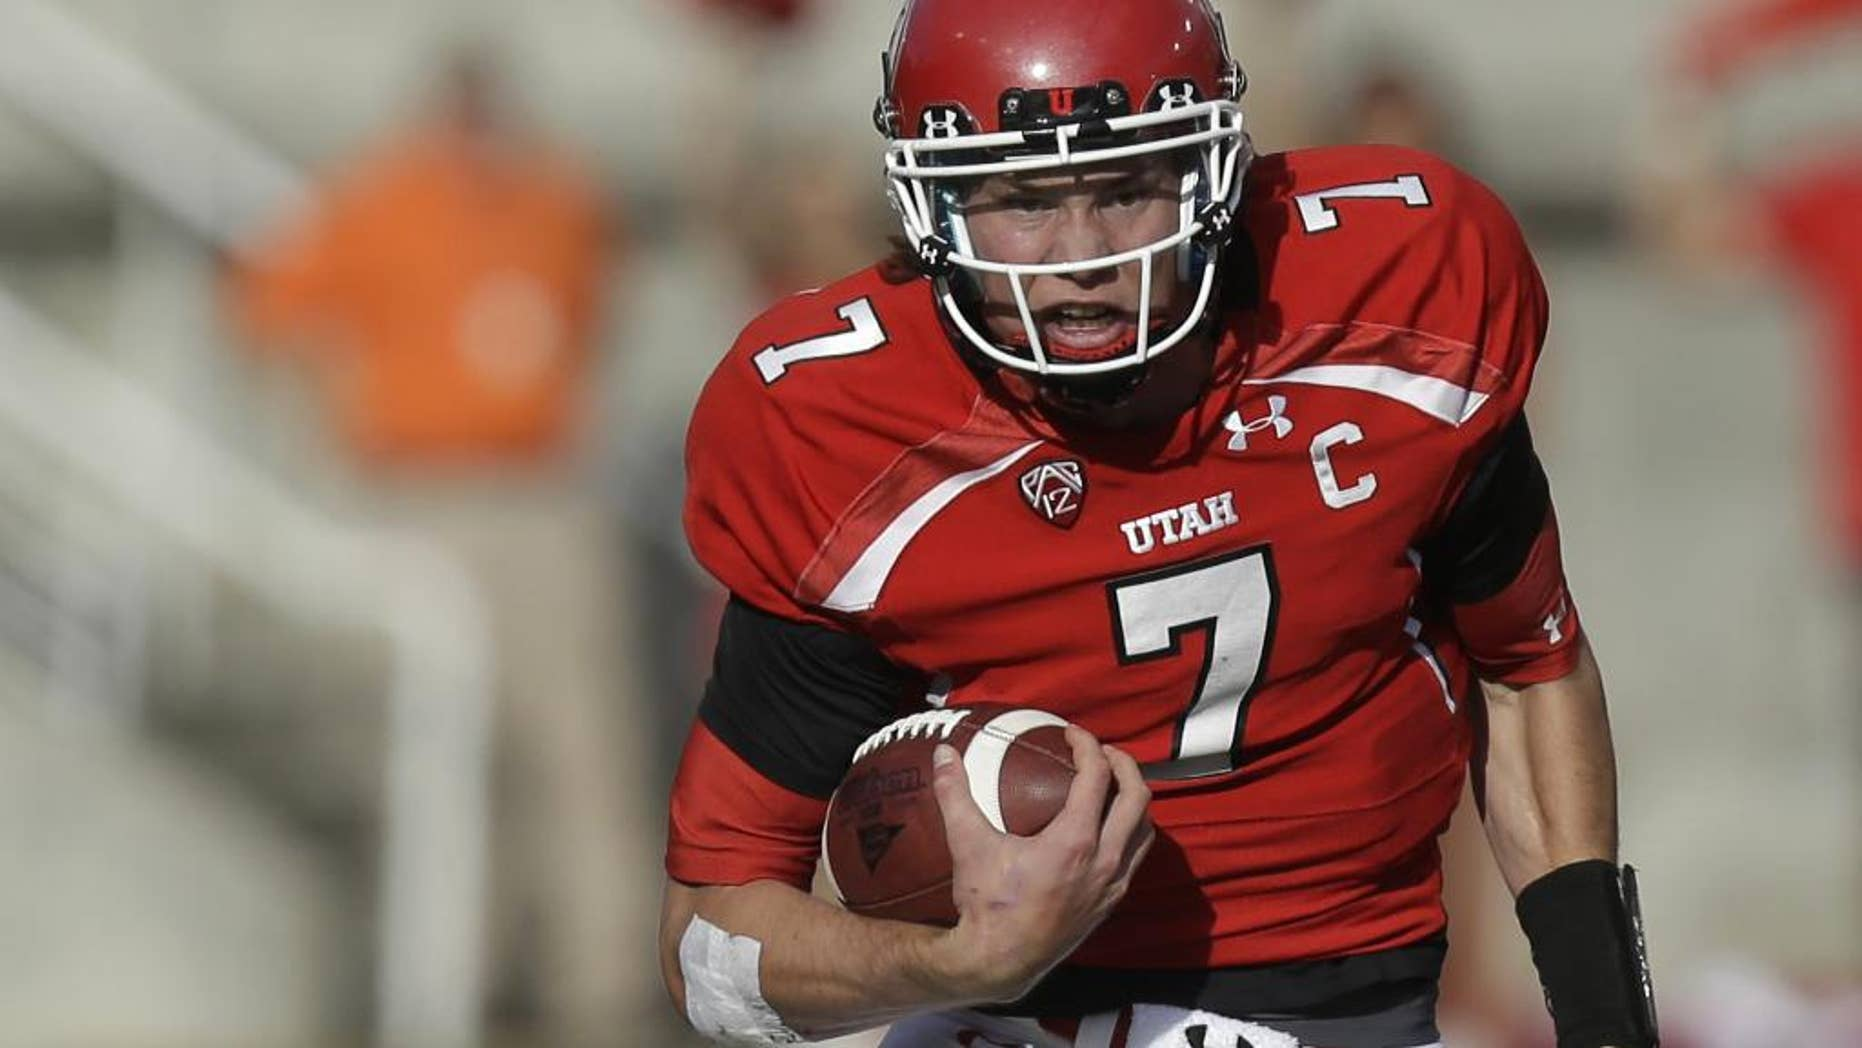 FILE - In this Nov. 9, 2013, file photo, Utah quarterback Travis Wilson carries the ball during an NCAA college football game against Arizona State in Salt Lake City. Wilson's first goal this season is to stay healthy.  (AP Photo/Rick Bowmer, File)